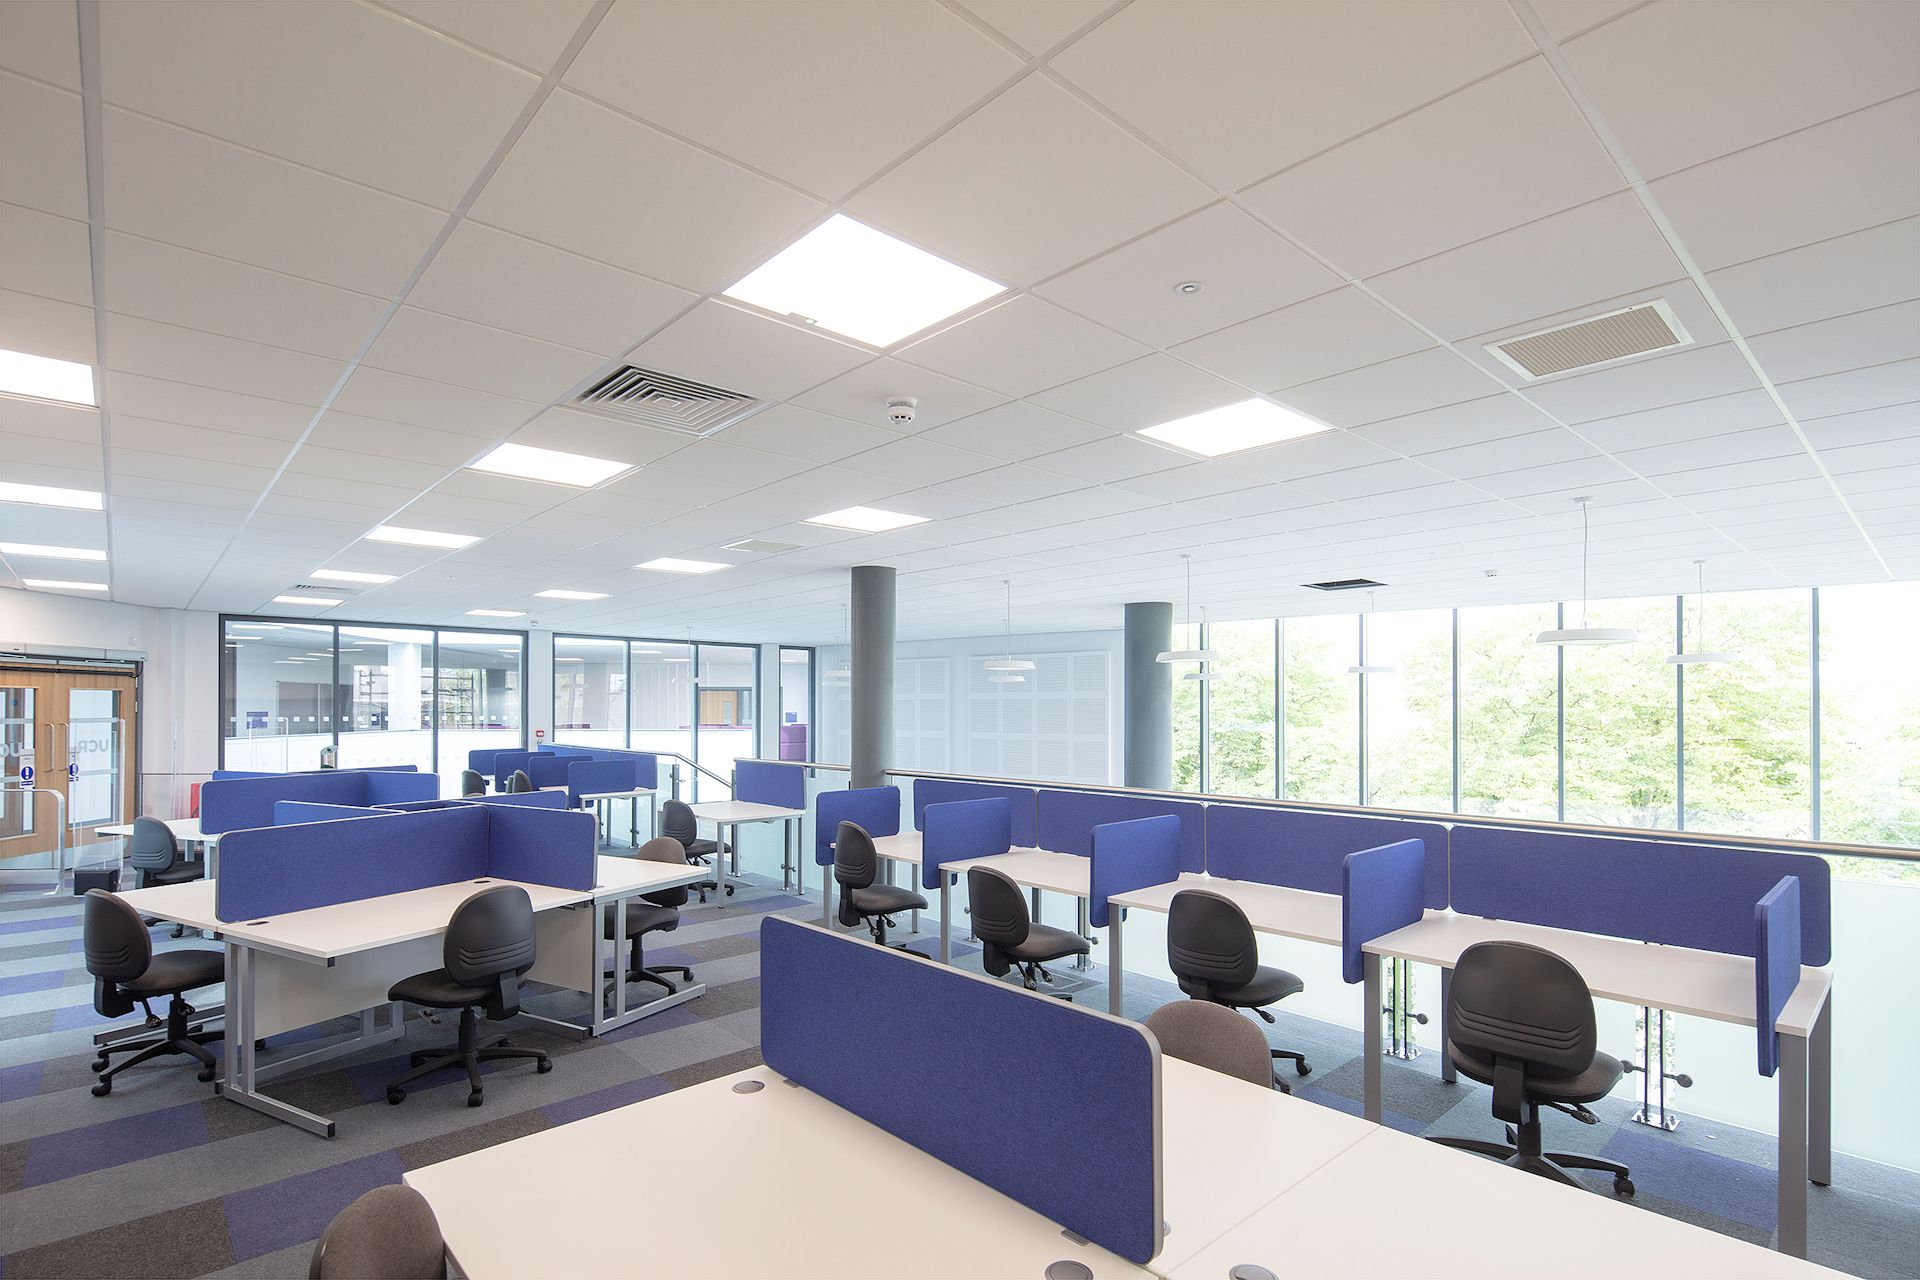 University College Rotherham - mid learning environment.jpg